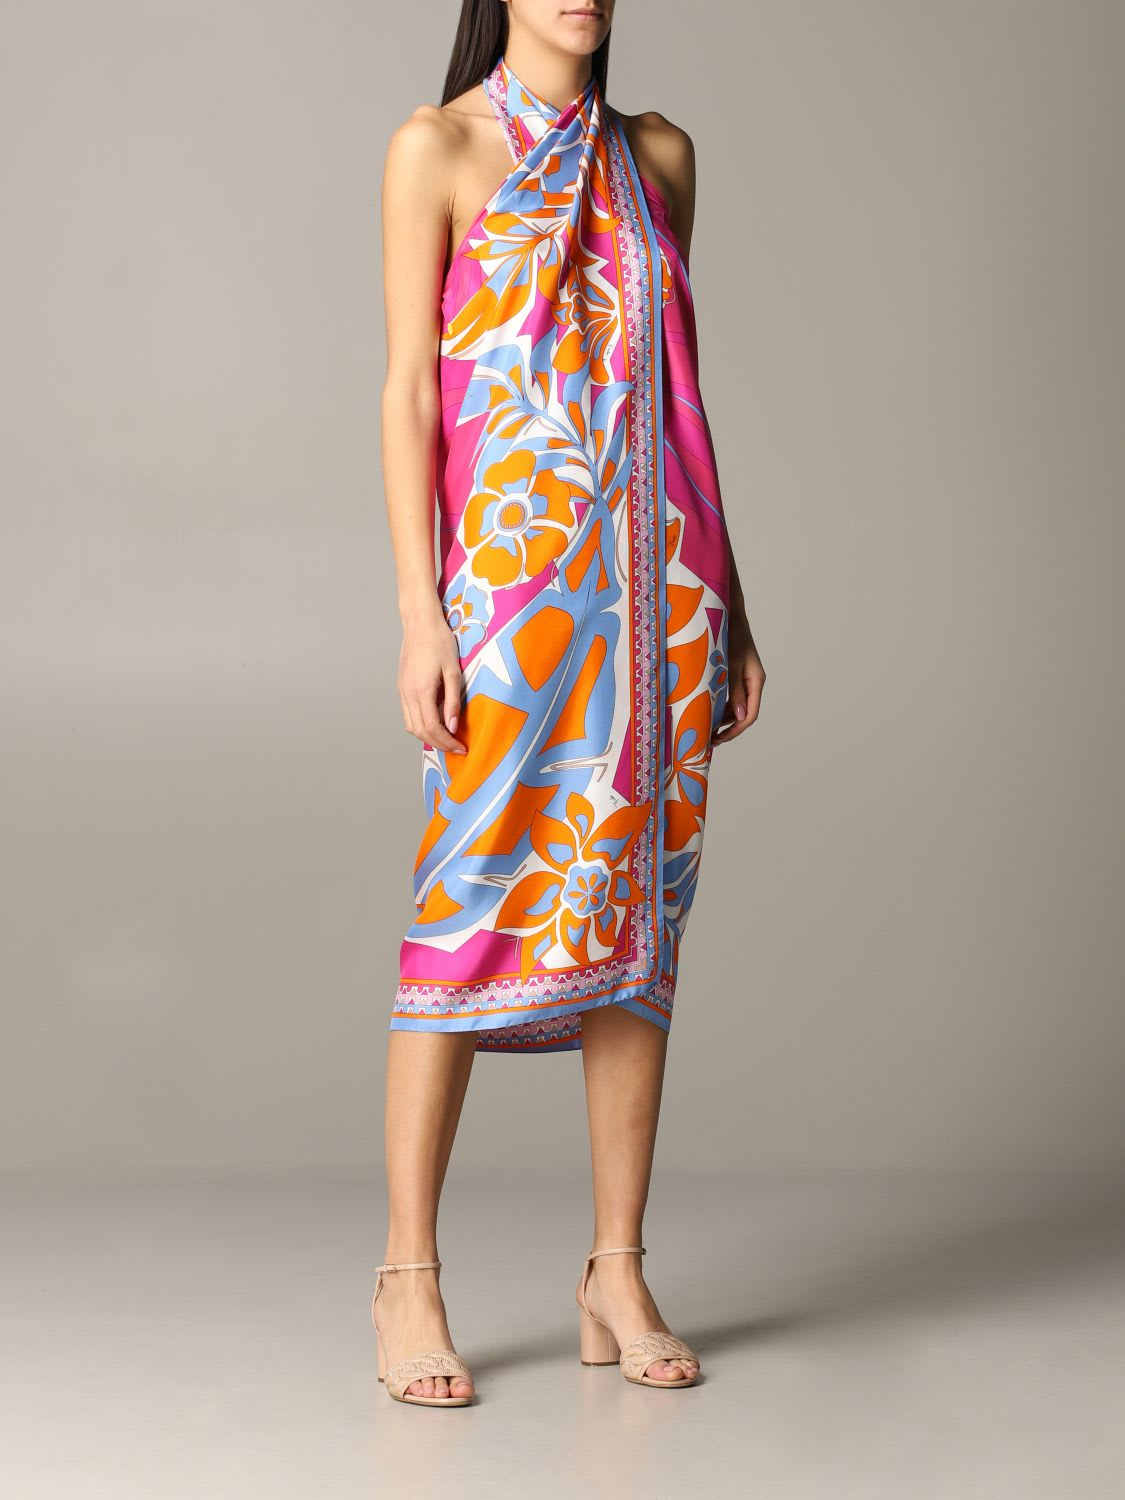 Buy Emilio Pucci Dress Emilio Pucci Sarong Dress In Silk Twill With Samoa Print online, shop Emilio Pucci with free shipping